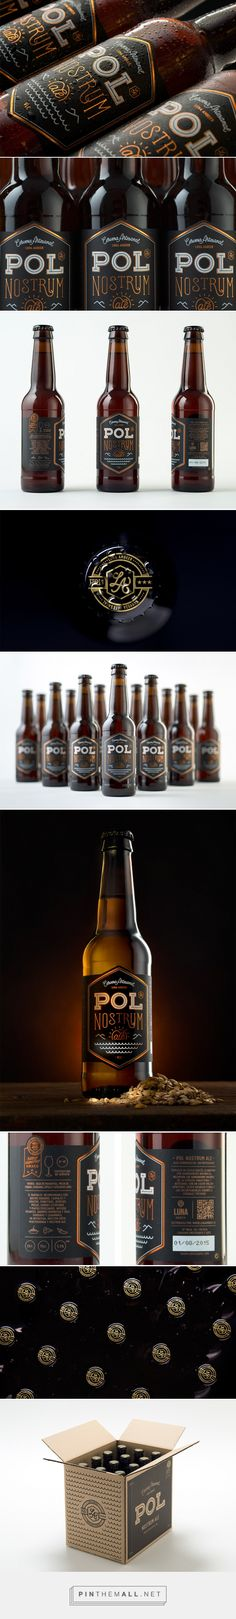 Pol Nostrum Ale - Packaging of the World - Creative Package Design Gallery - http://www.packagingoftheworld.com/2017/02/pol-nostrum-ale.html